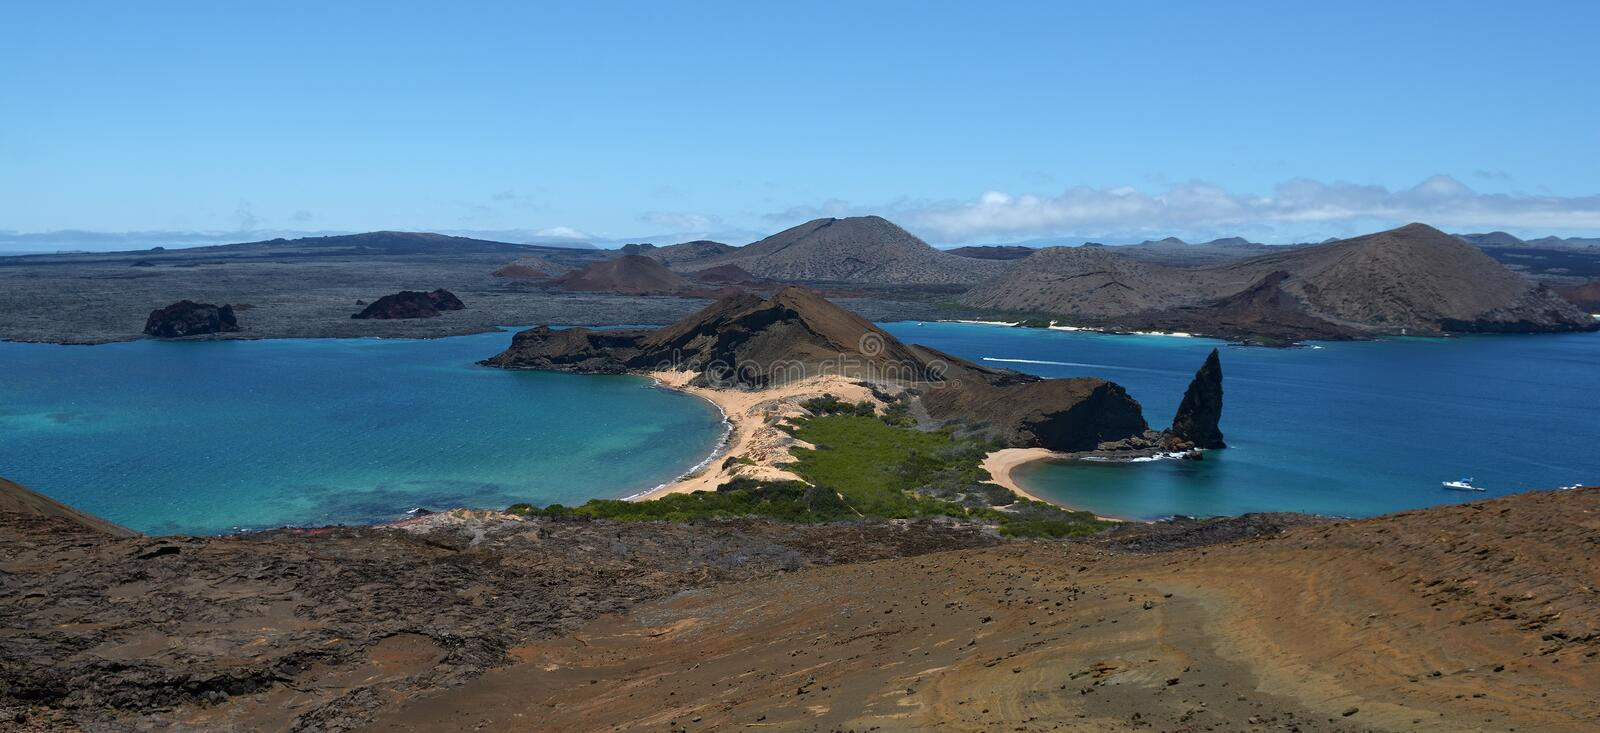 Galapagos panorama volcanic landscape 7 royalty free stock images